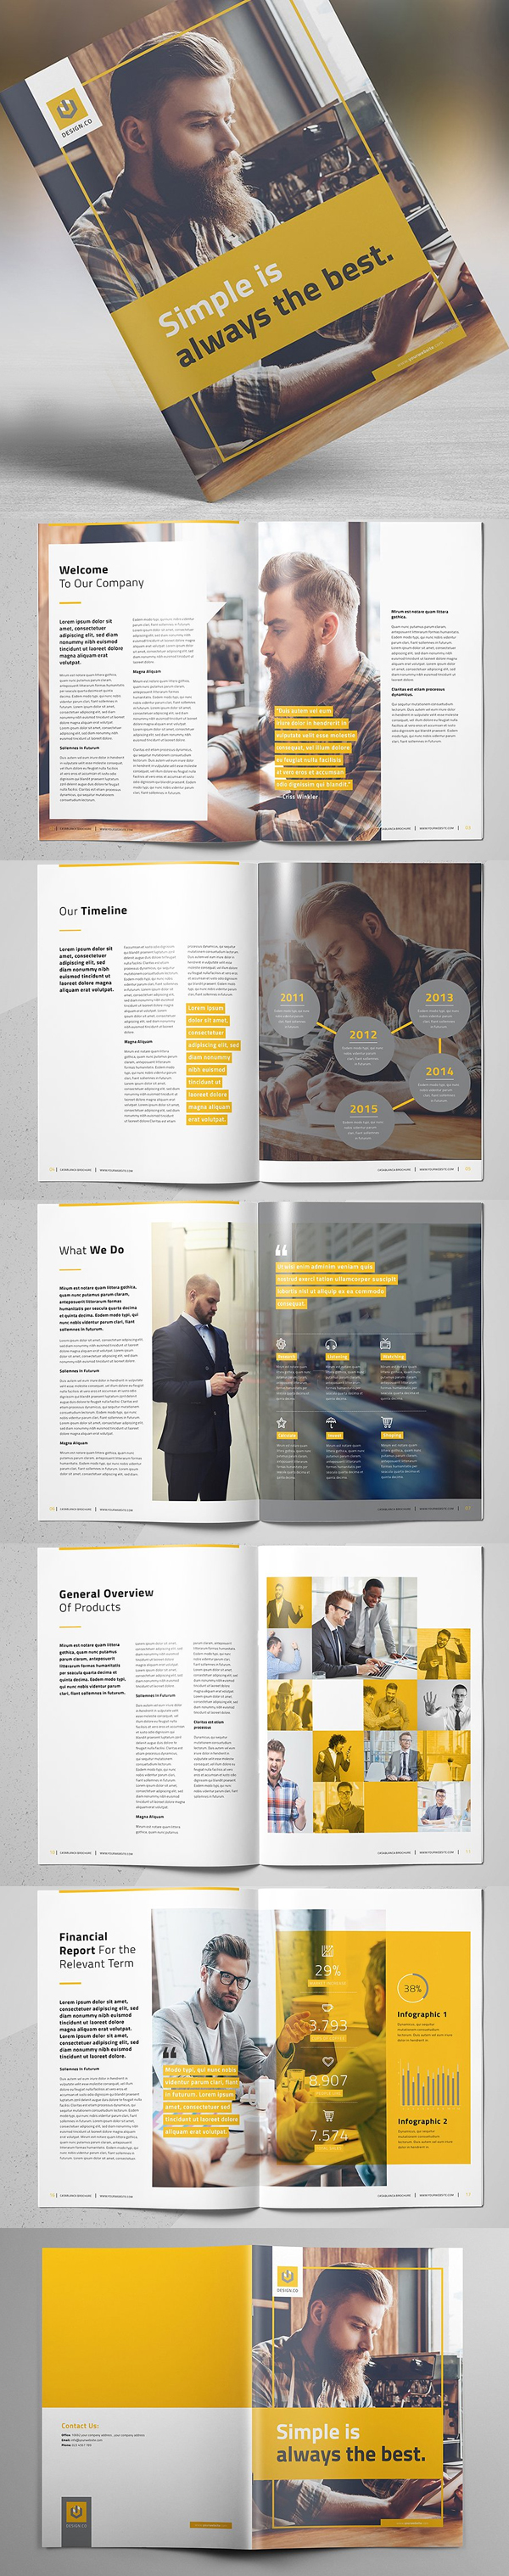 100 Professional Corporate Brochure Templates - 24